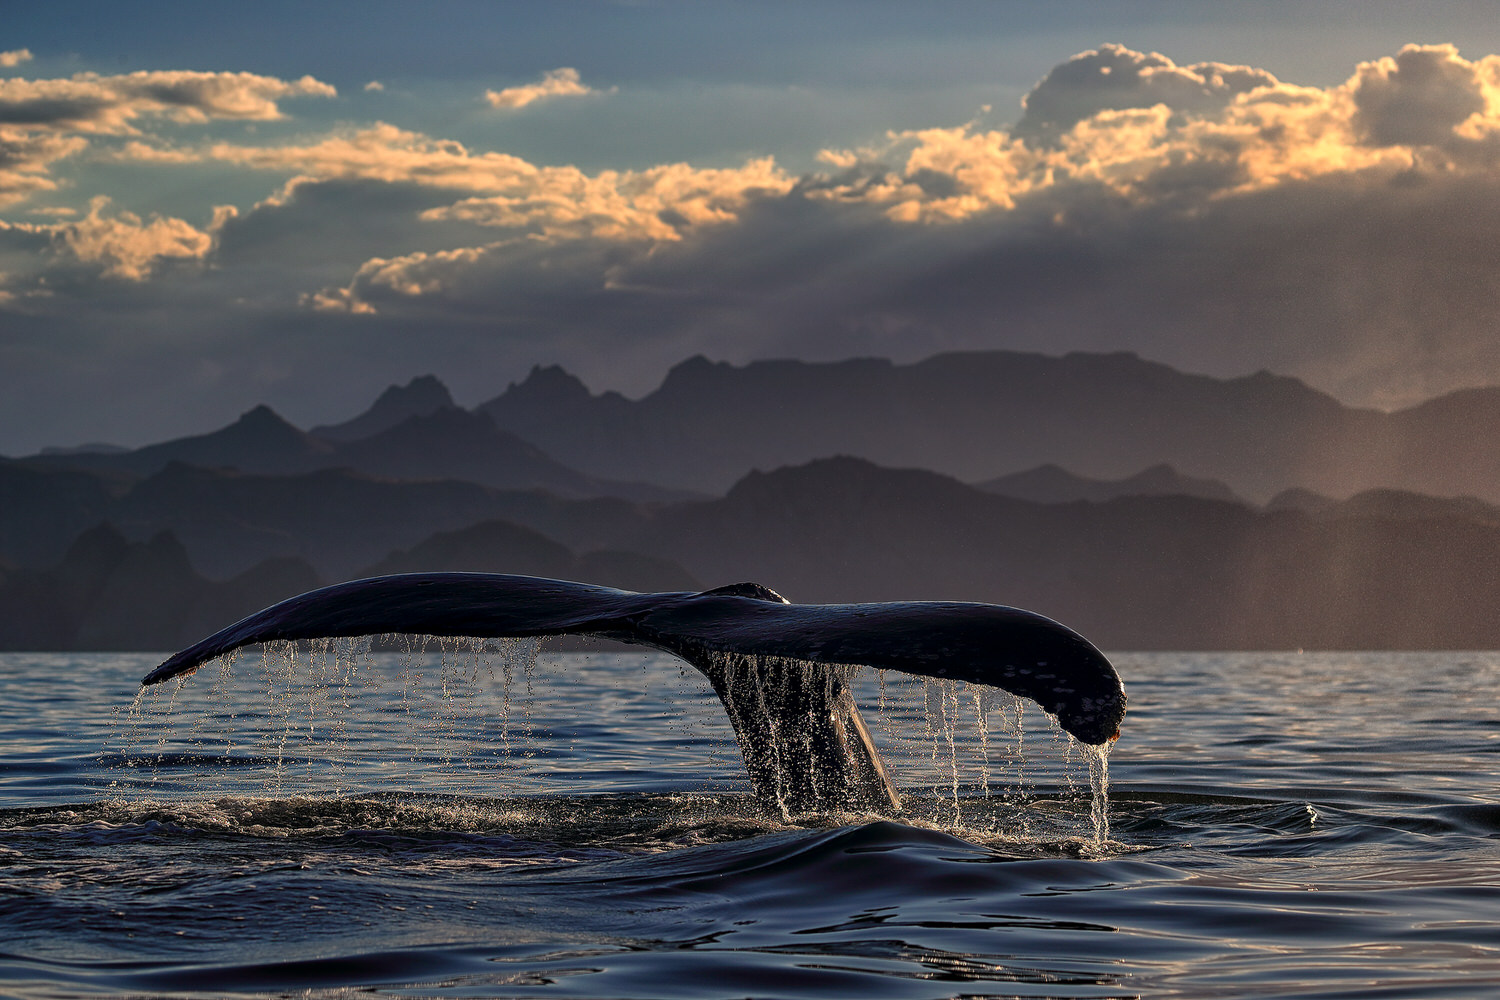 BOOK NOW: Whale Watching on Mexico's Baja California Peninsula